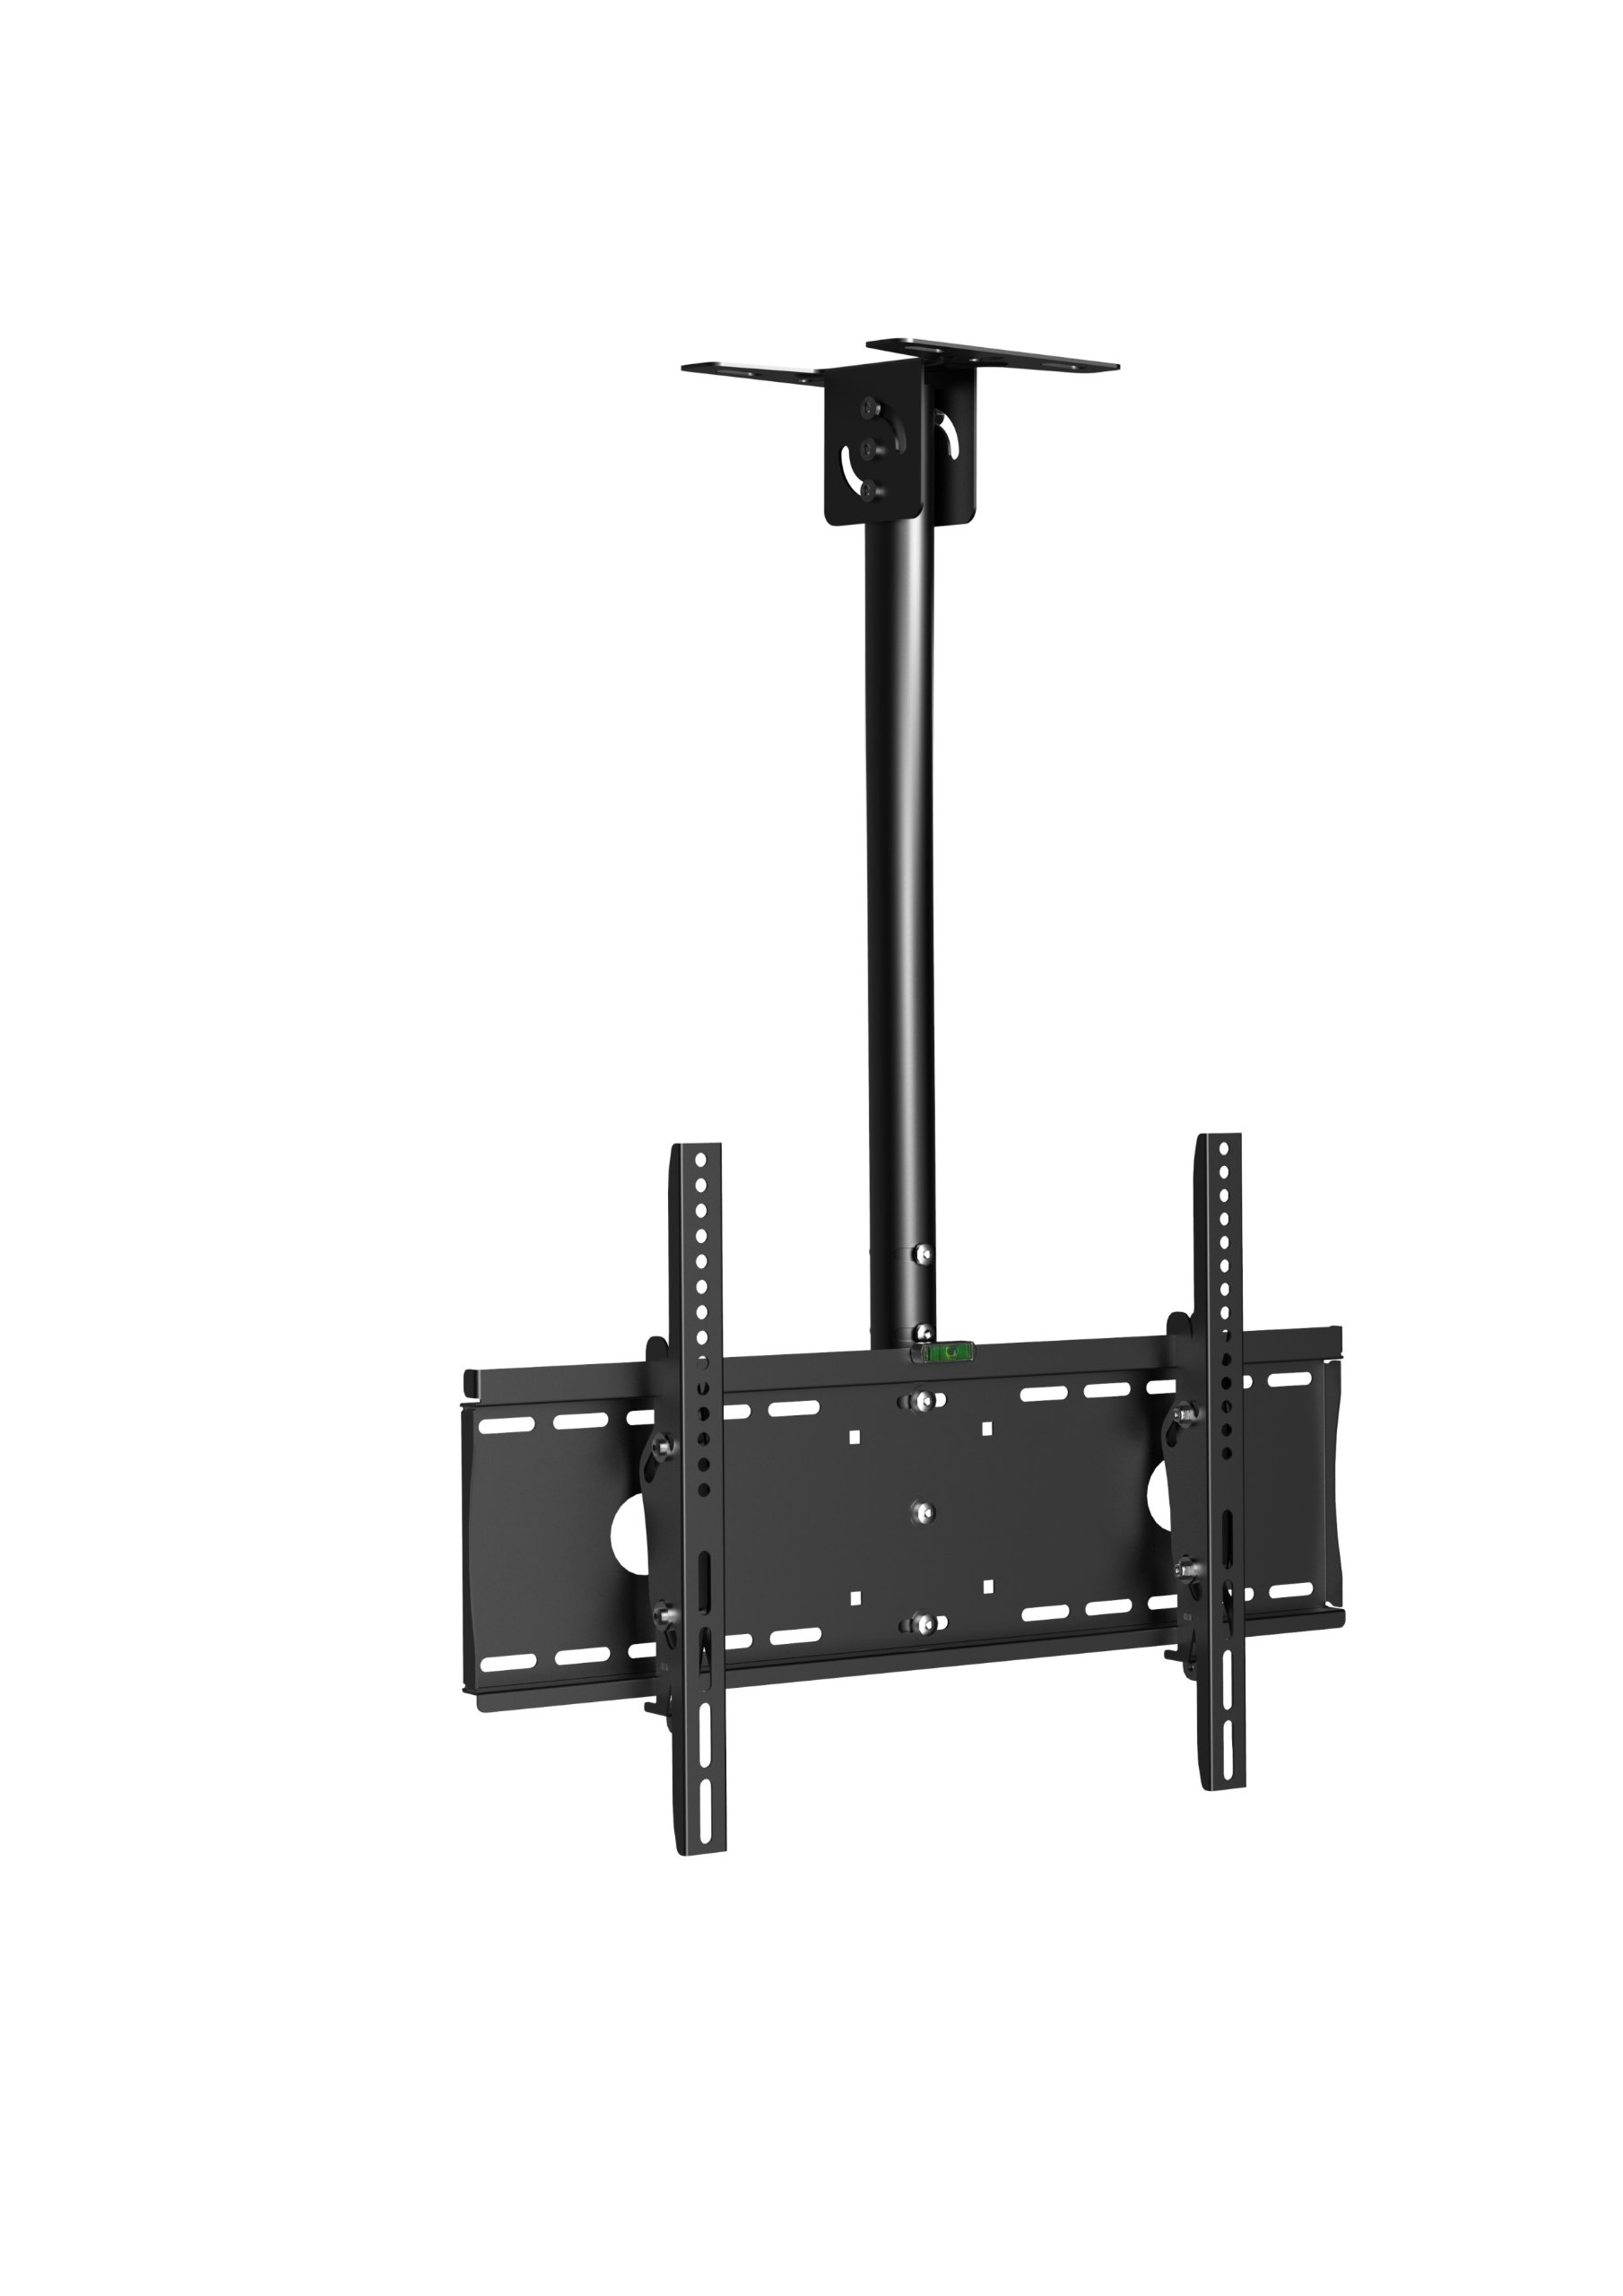 rotation rakuten product mount shop ceilings it degree adjustable full mounted height mi tv motion bracket ceiling